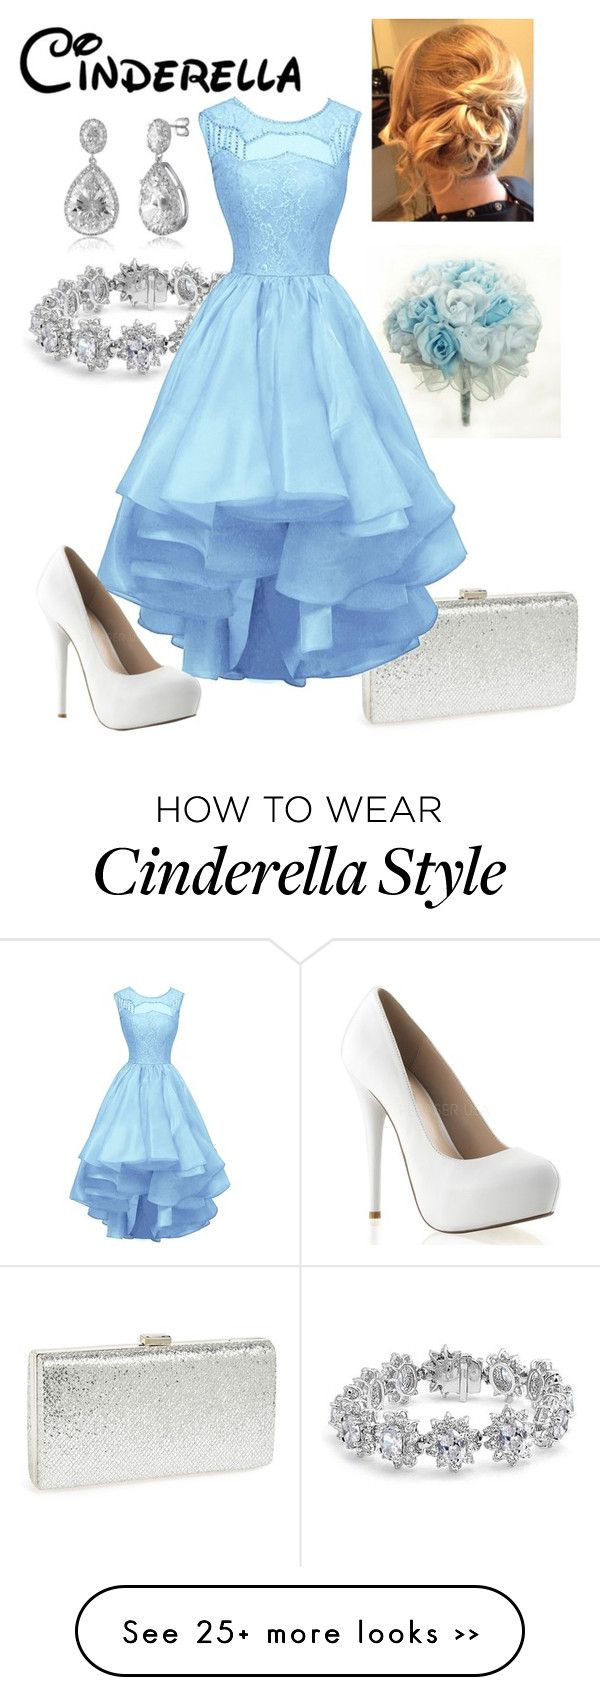 """Disney - Cinderella"" by briony-jae on Polyvore featuring Natasha Couture, Bling Jewelry and BERRICLE"